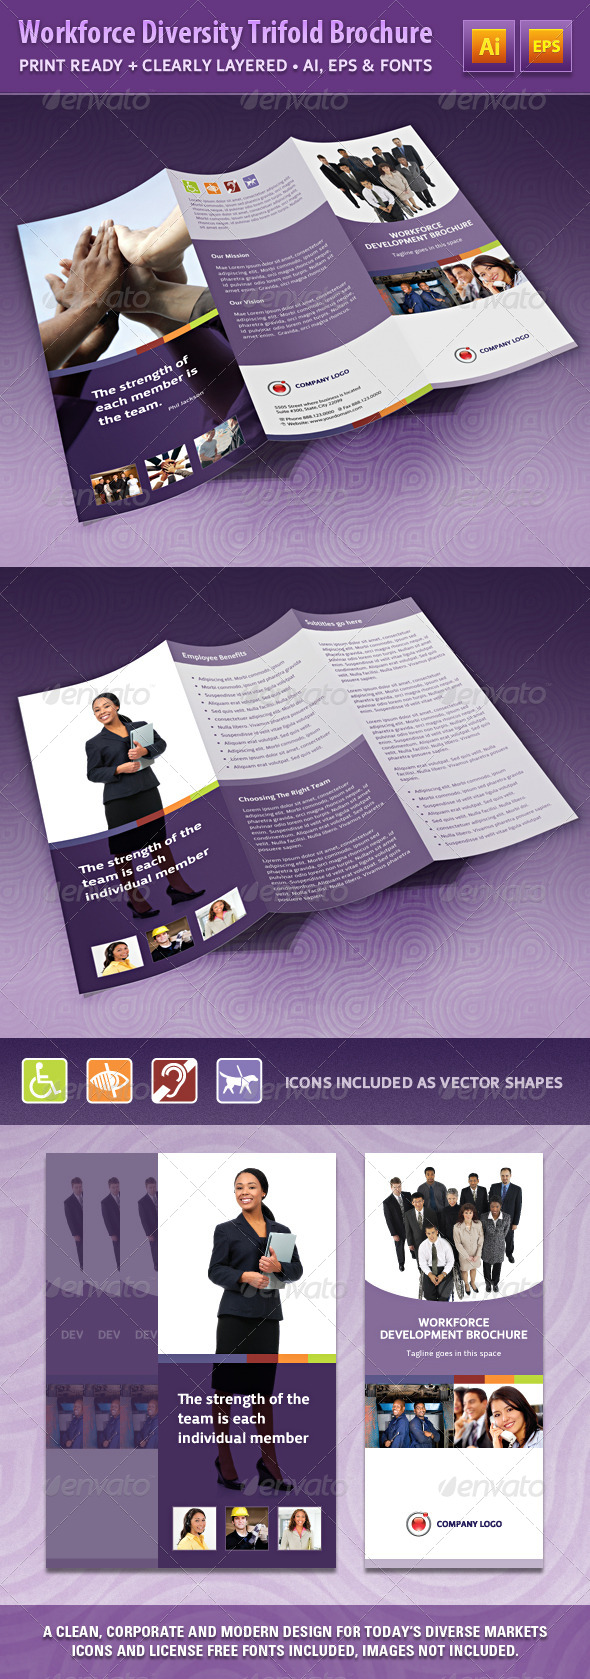 GraphicRiver Workforce Diversity Trifold Brochure 4565575